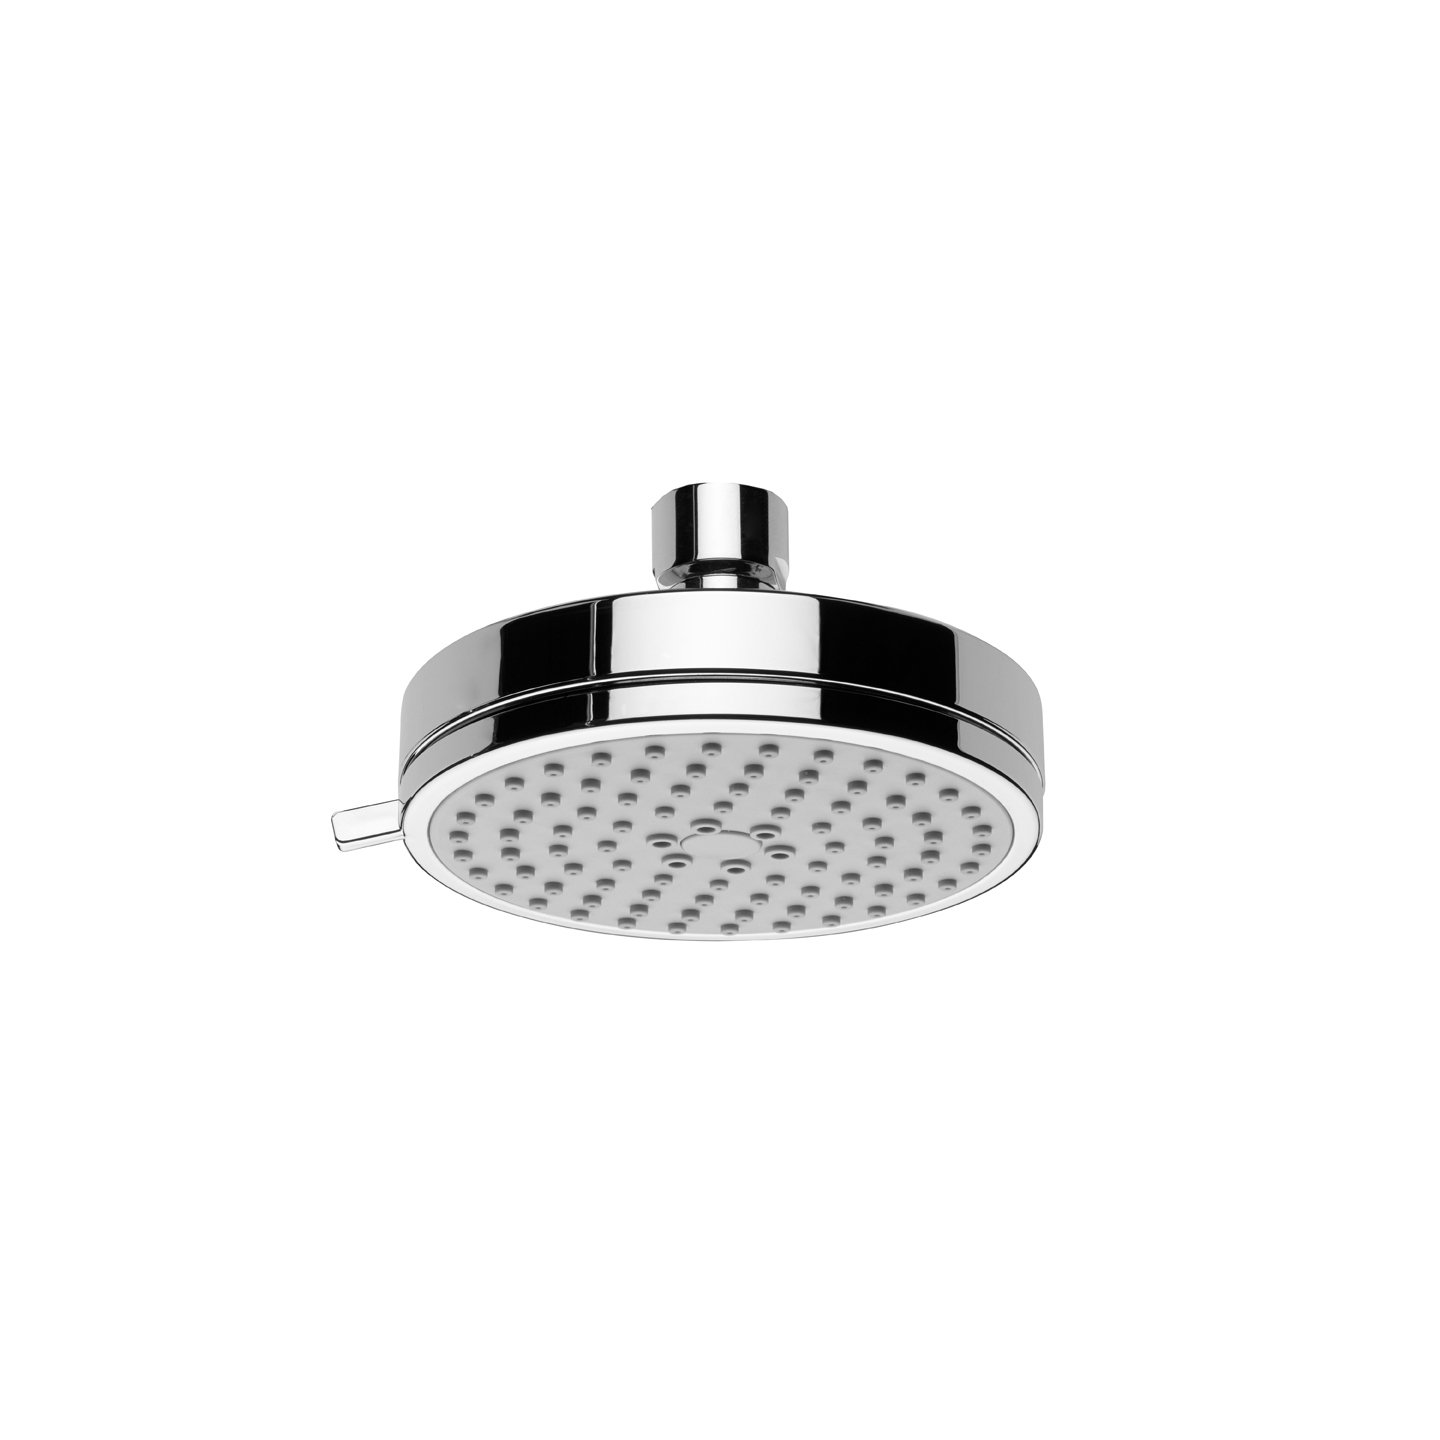 Nikles Fresh Round 105 Duo 4 inches shower head